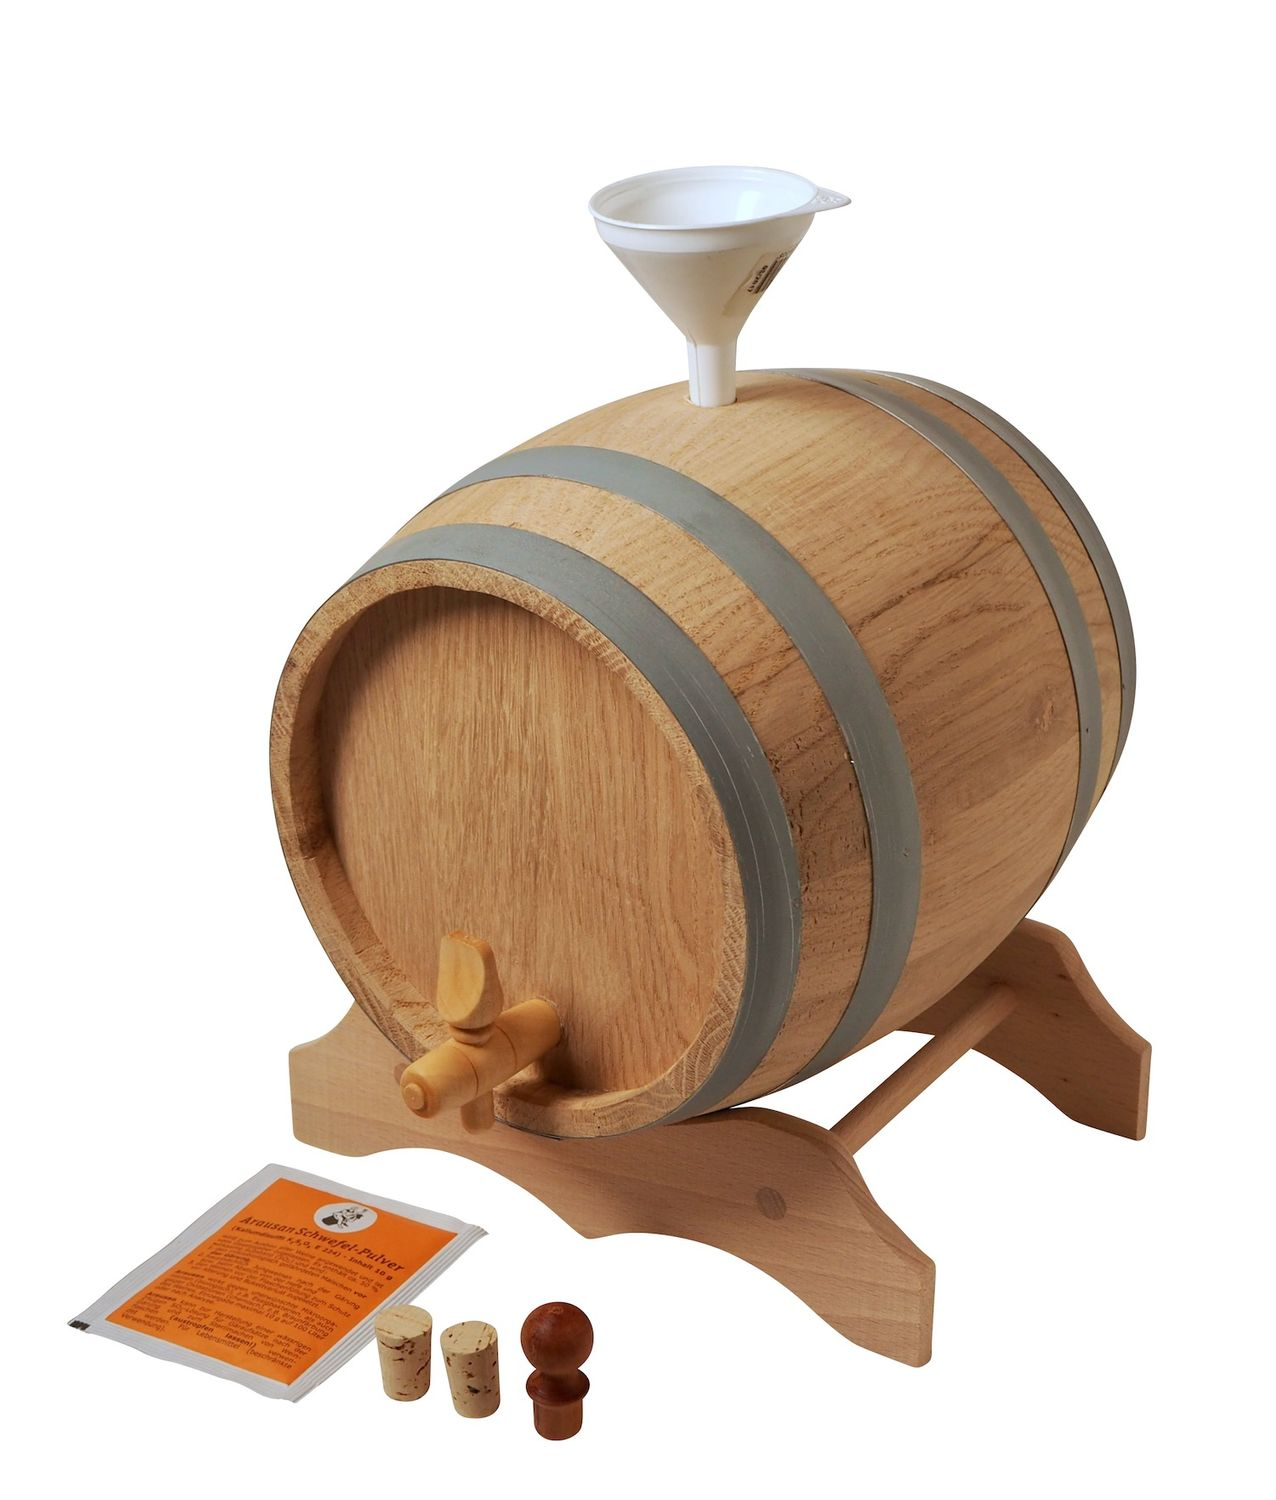 2 L Barrel with wooden stand in a set, European oak wood